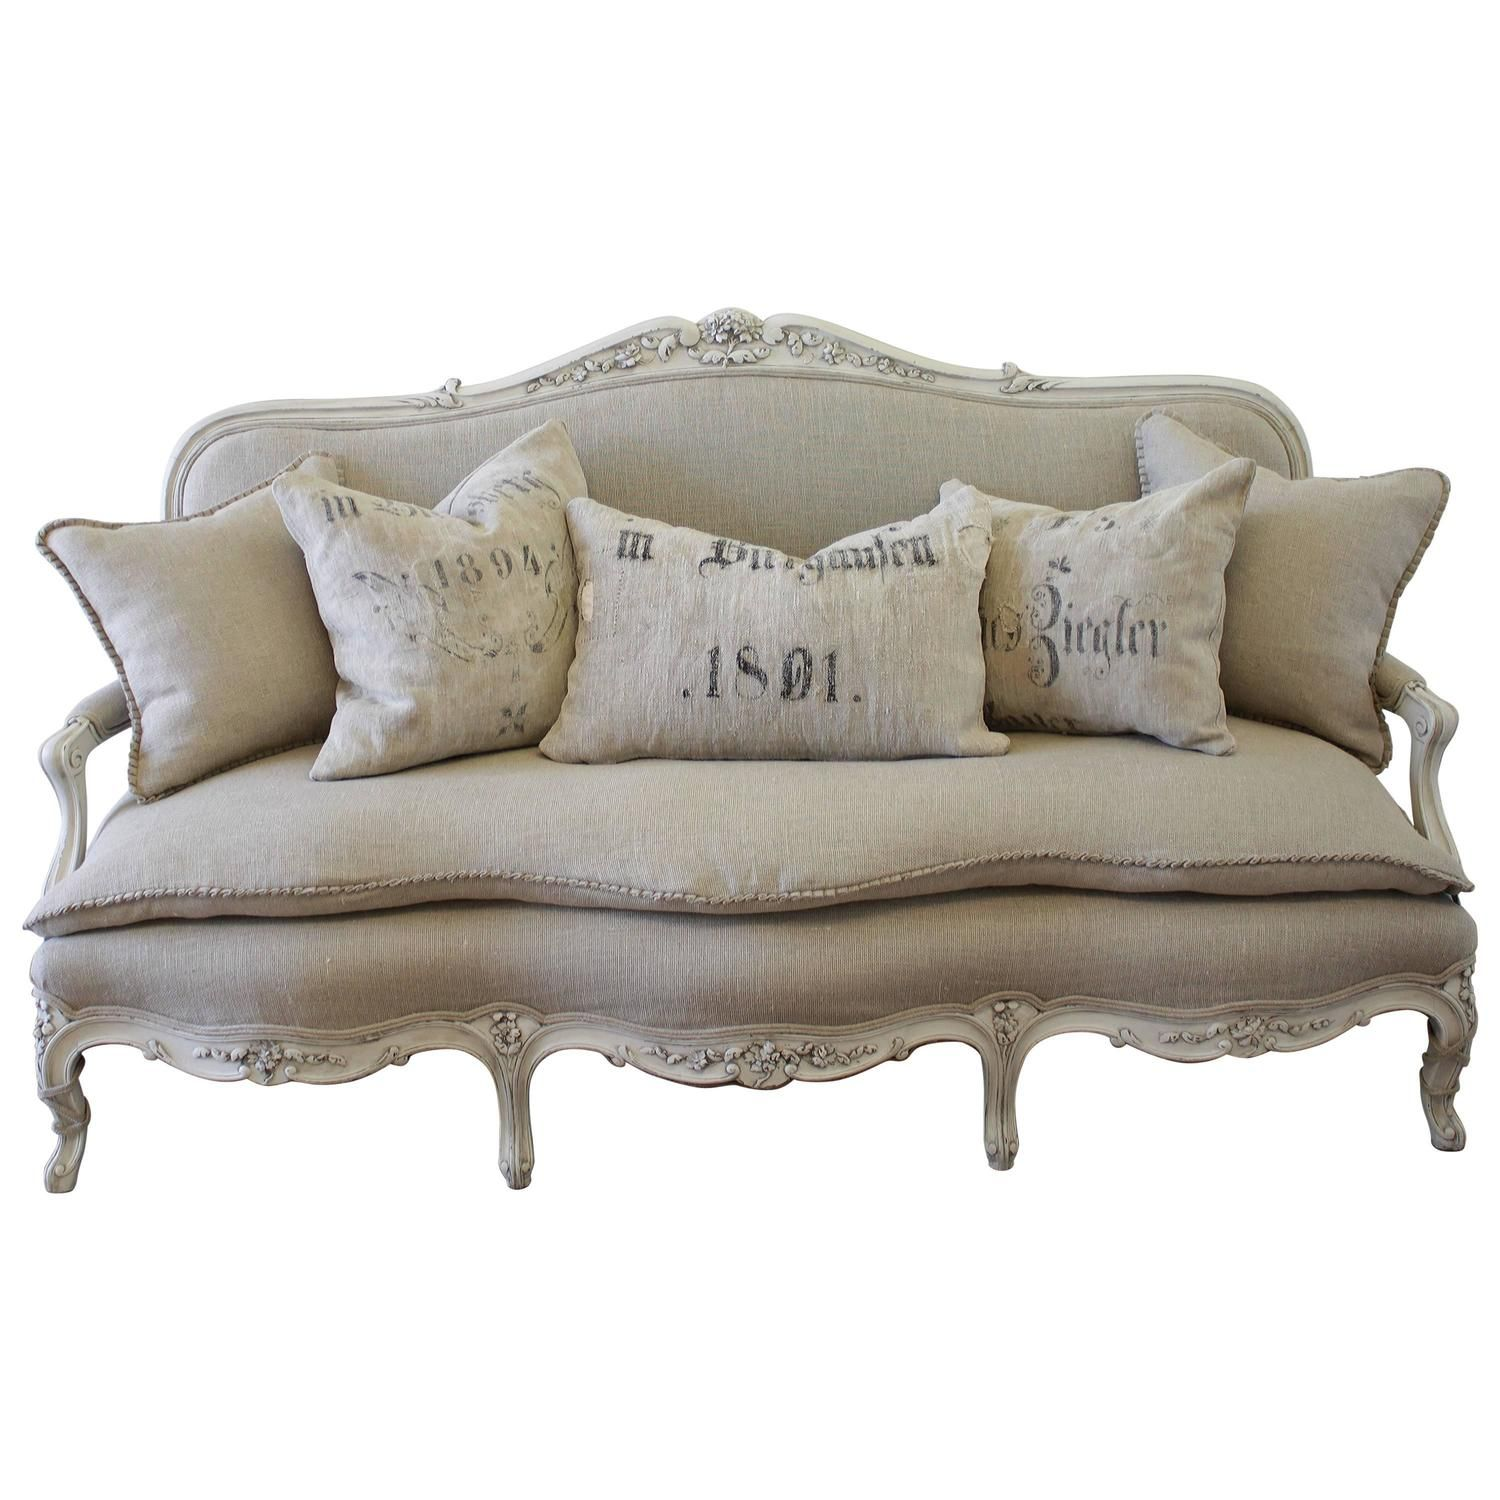 Antique Painted French Country Louis Xv Style Sofa Settee In Irish